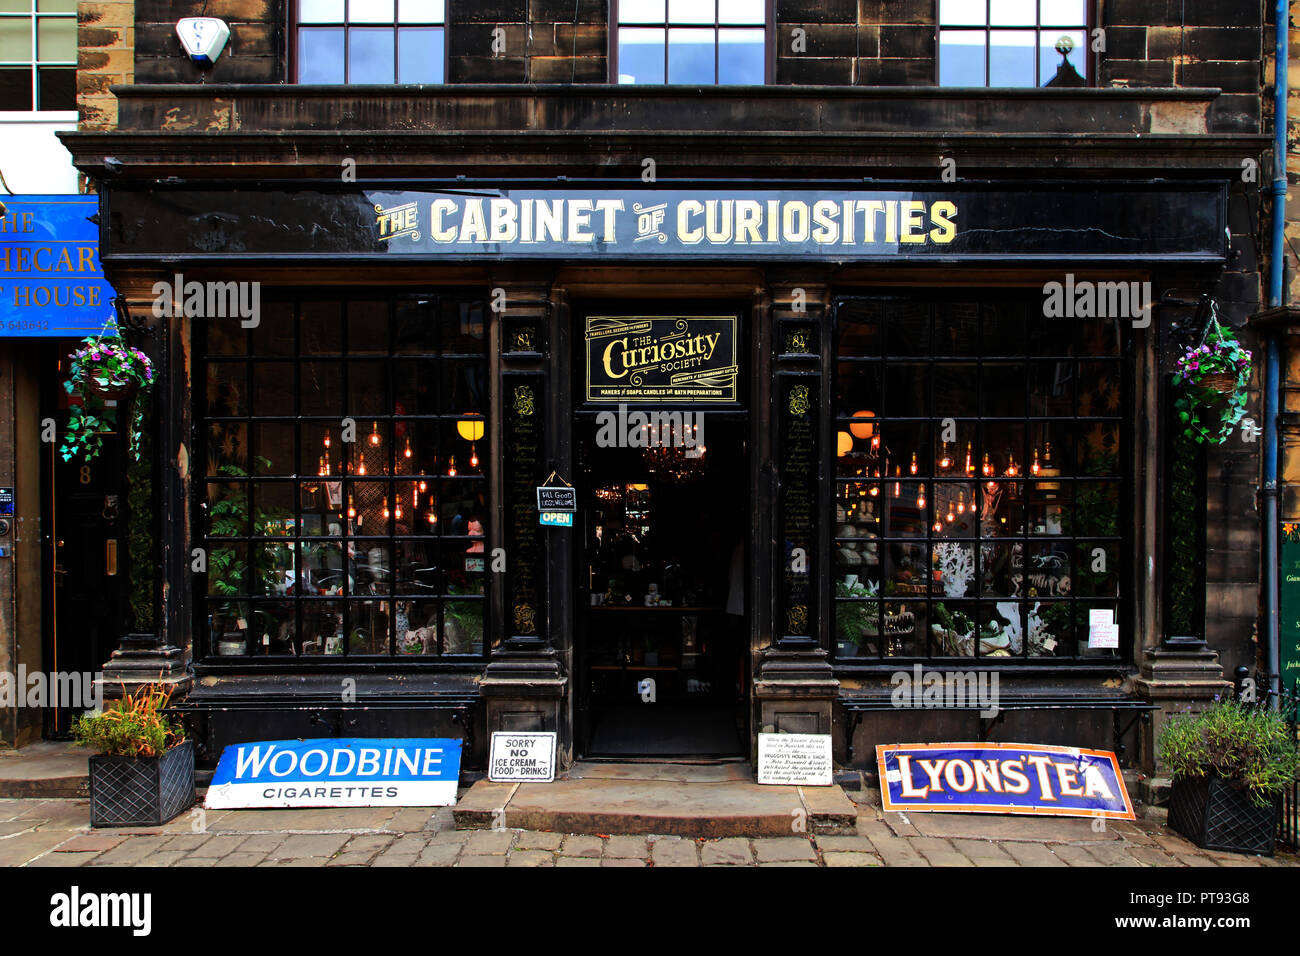 The Cabinet of Curiosities, Main Street, Haworth, Keighley, Yorkshire, England ofrmerly The Old Apothecary,Rose & Co - Stock Image